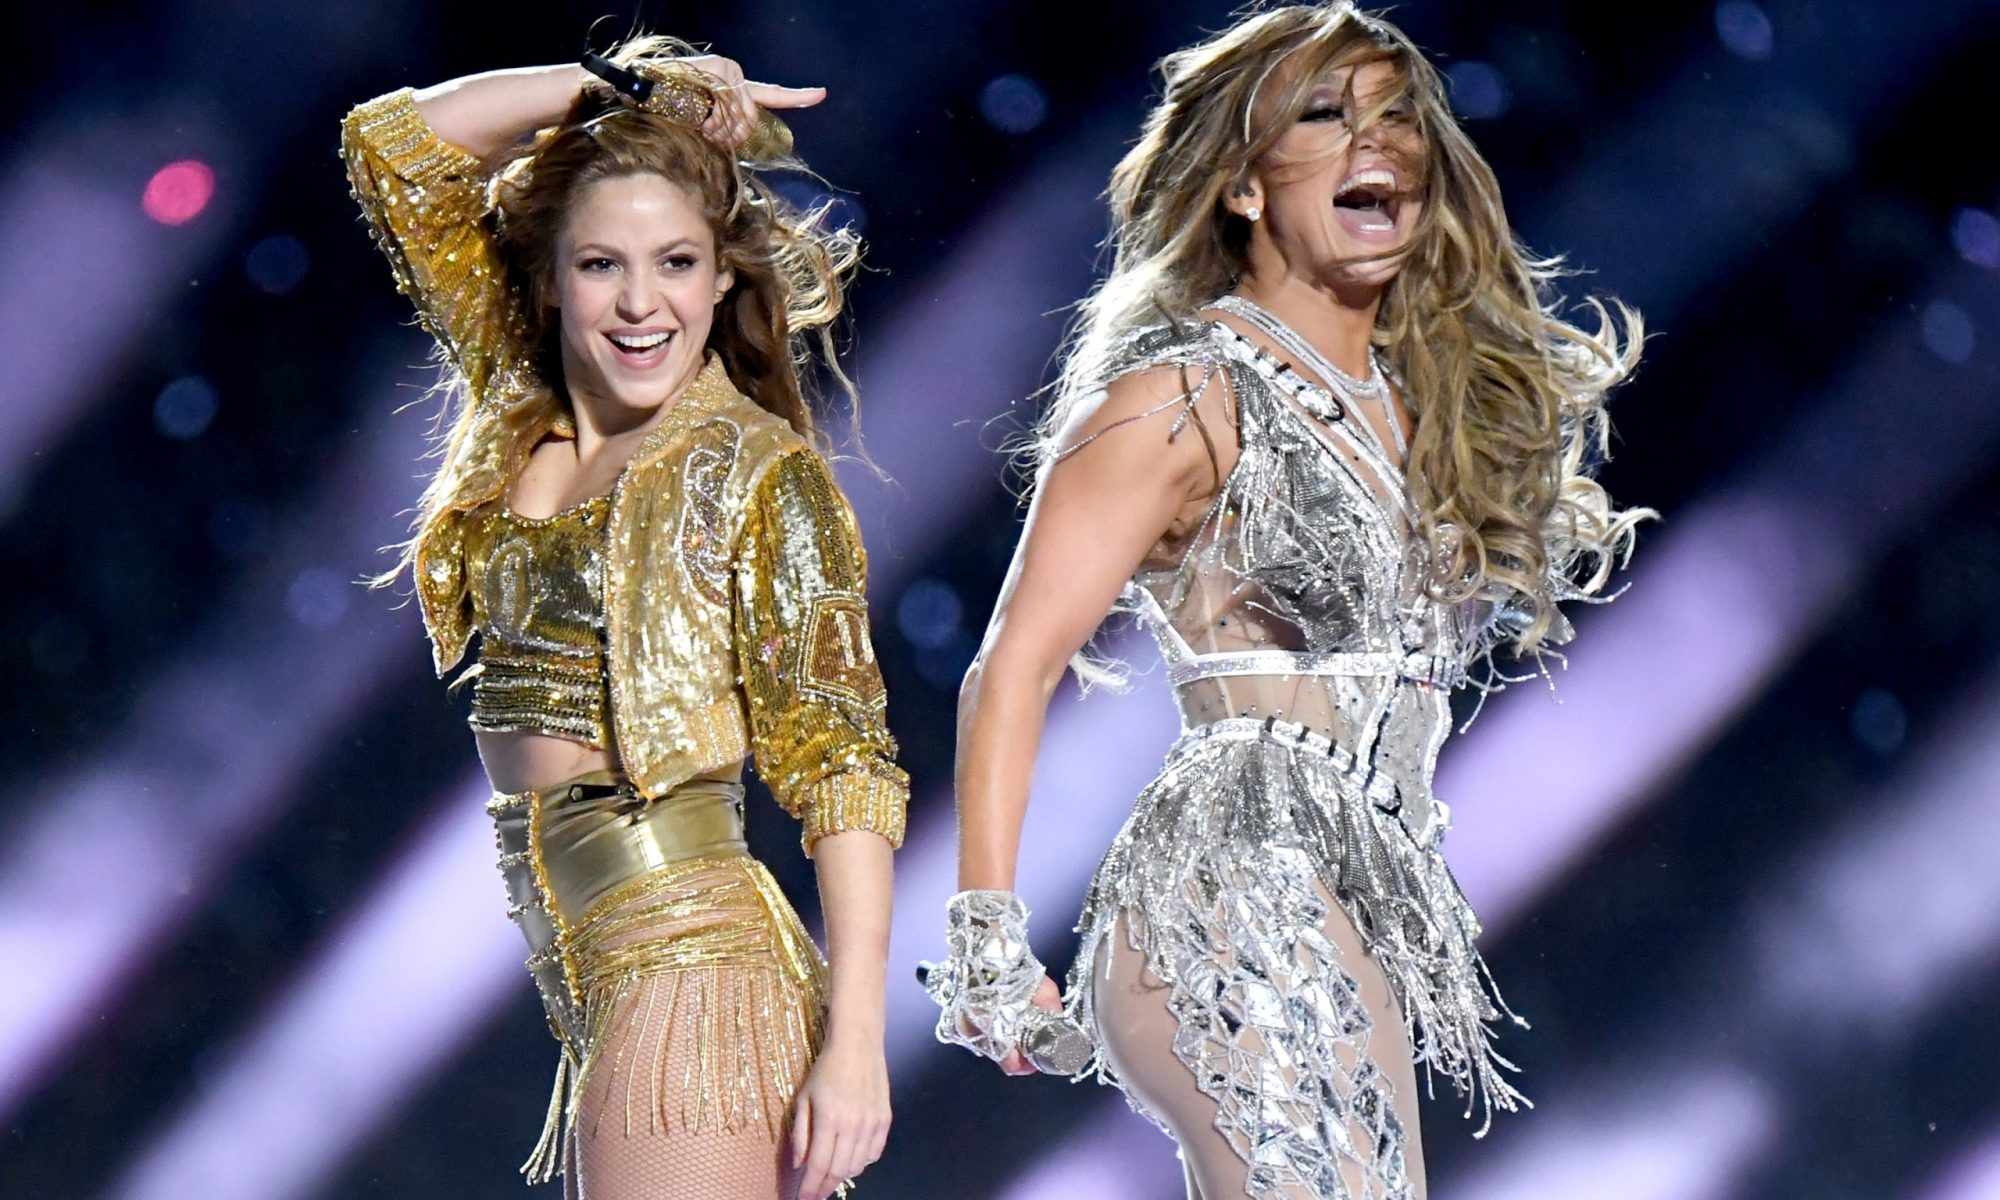 shakira and jlo superbowl half-time show 2020 shakira jlo superbowl halftime let's get loud first generation Latinas American Latin women heritage